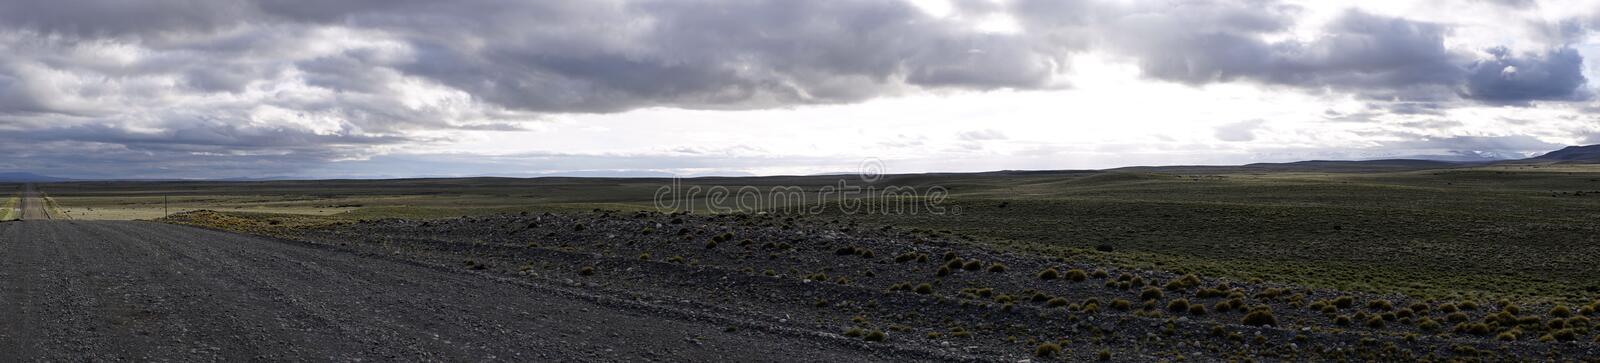 Road in Argentinian Patagonia and Horizon Line. Rural road in Argentinan Patagonia. Panorama. Horizon line royalty free stock photography